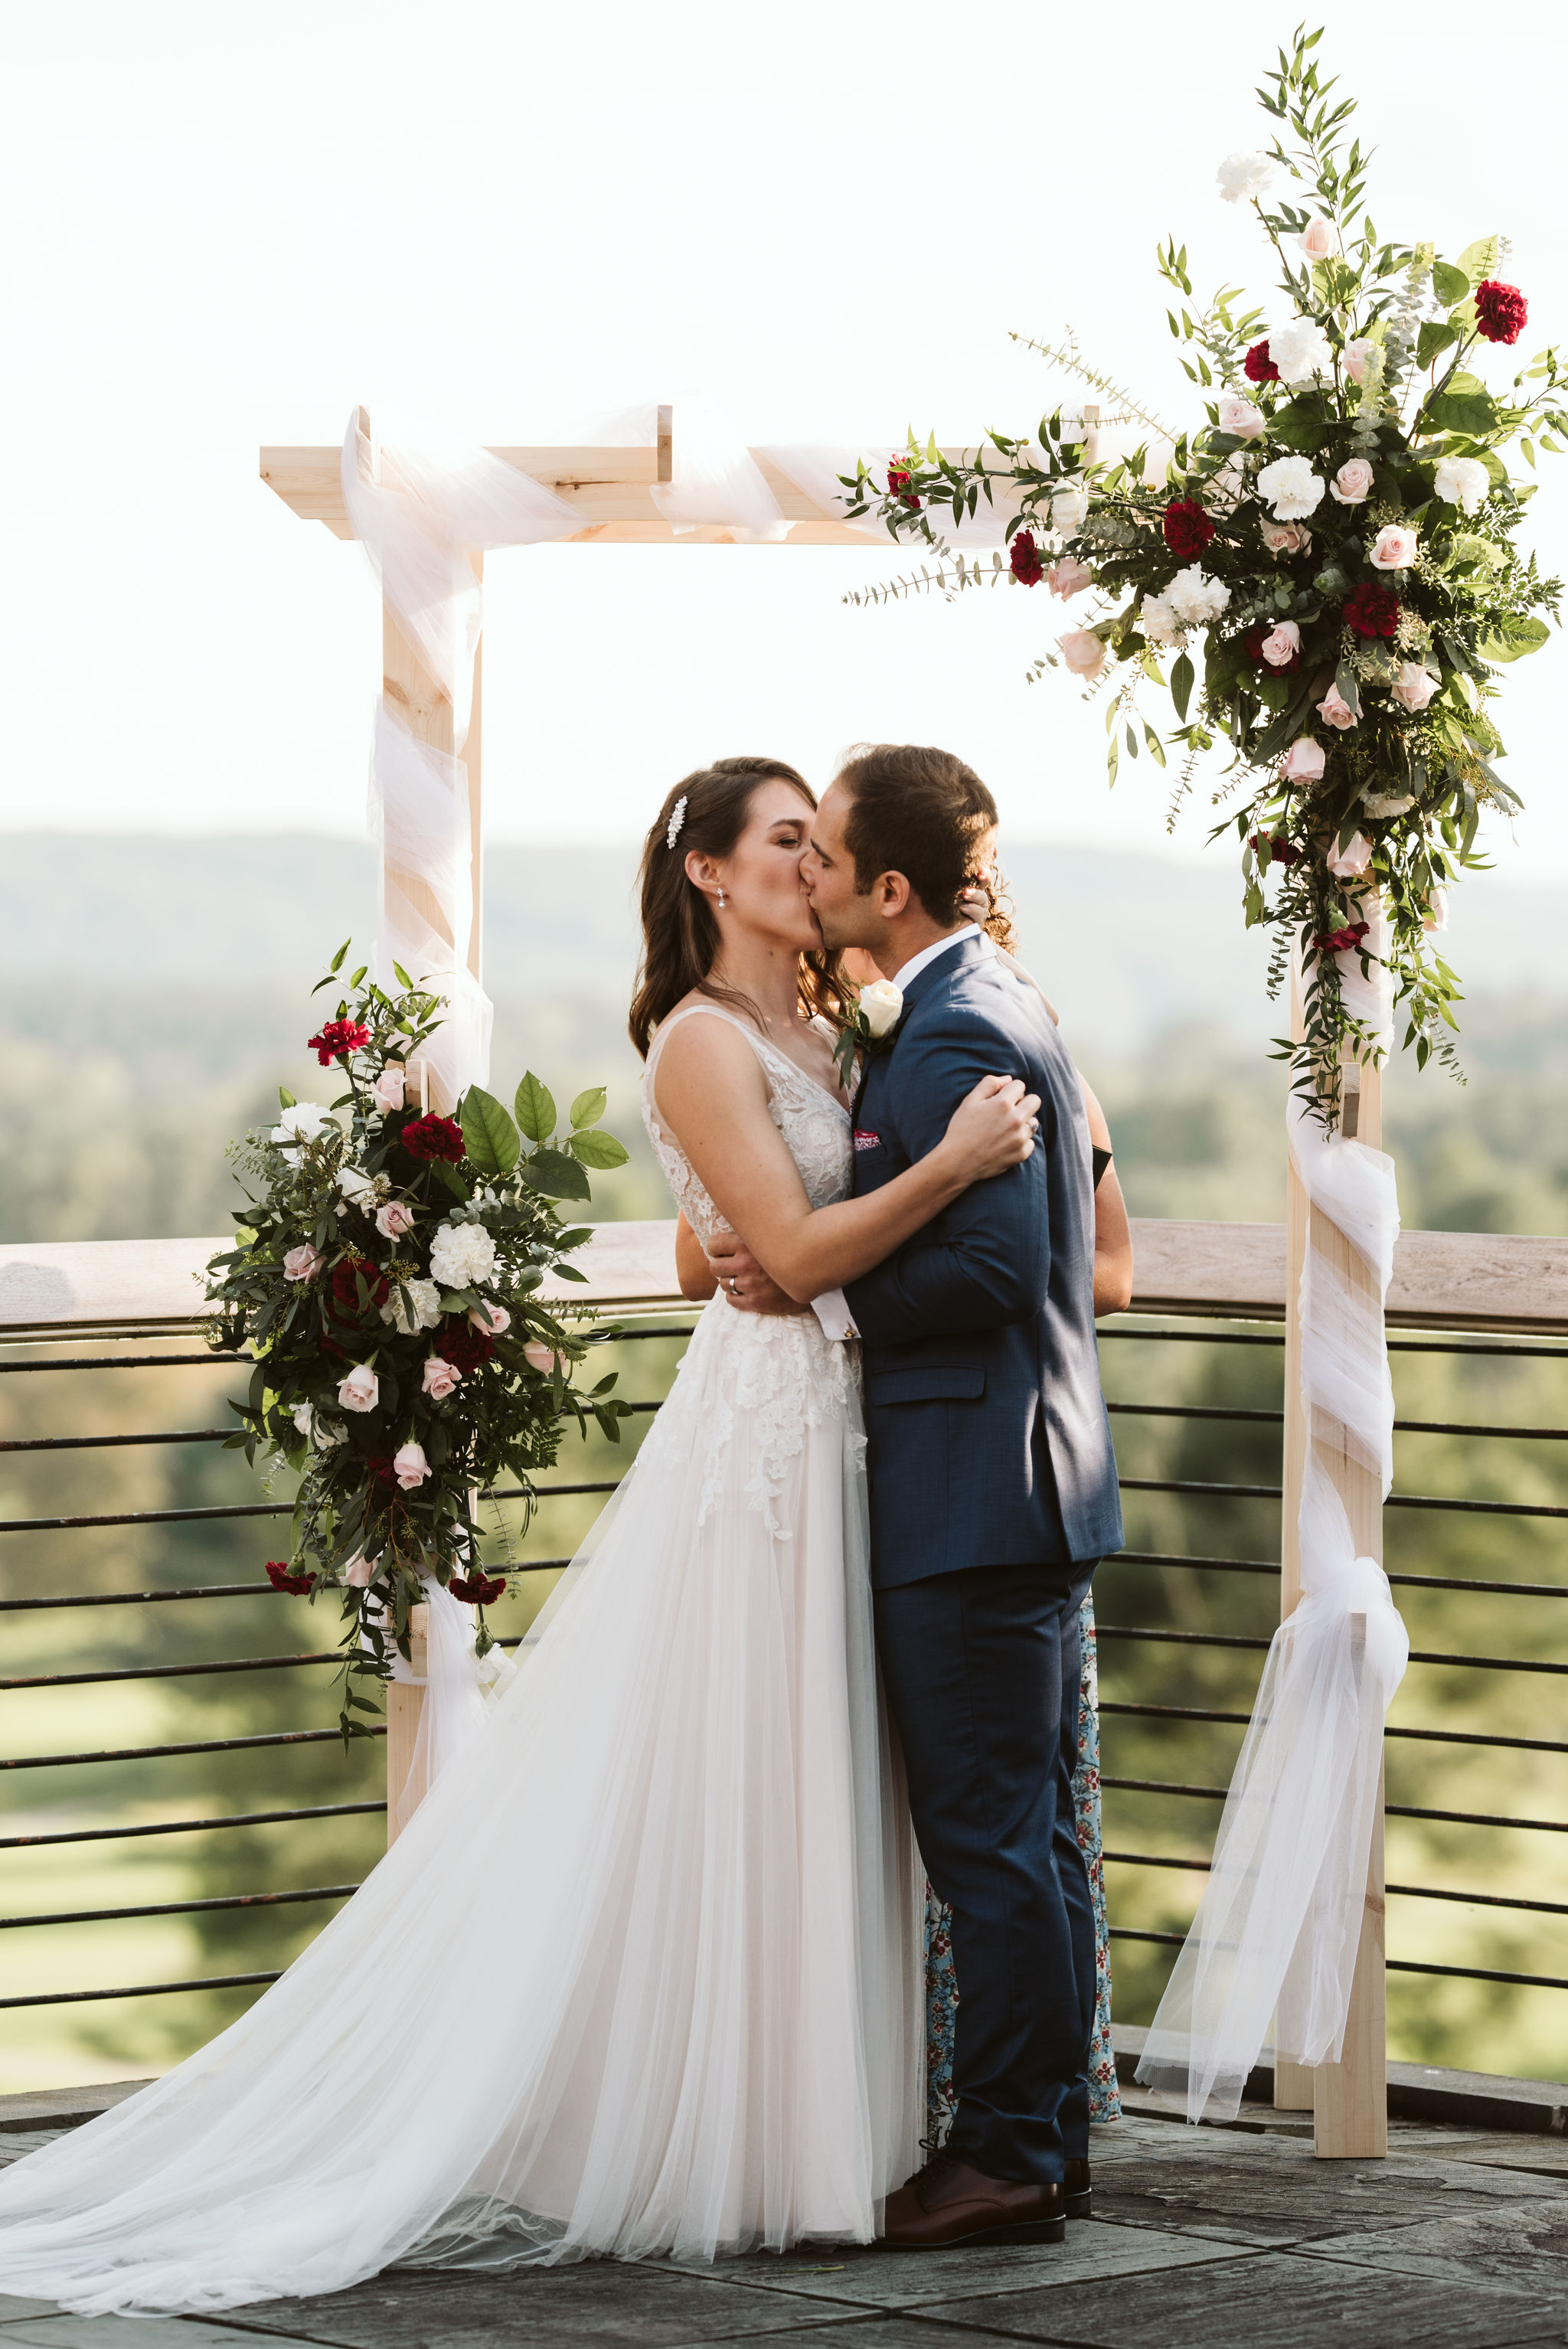 Phoenix Maryland, Baltimore Wedding Photographer, Eagle's Nest Country Club, Classic, Romantic, Spring, Bride and Groom Share First Kiss, Just Married, Red and White Floral Arrangements, Dundalk Florist, BHLDN Dress